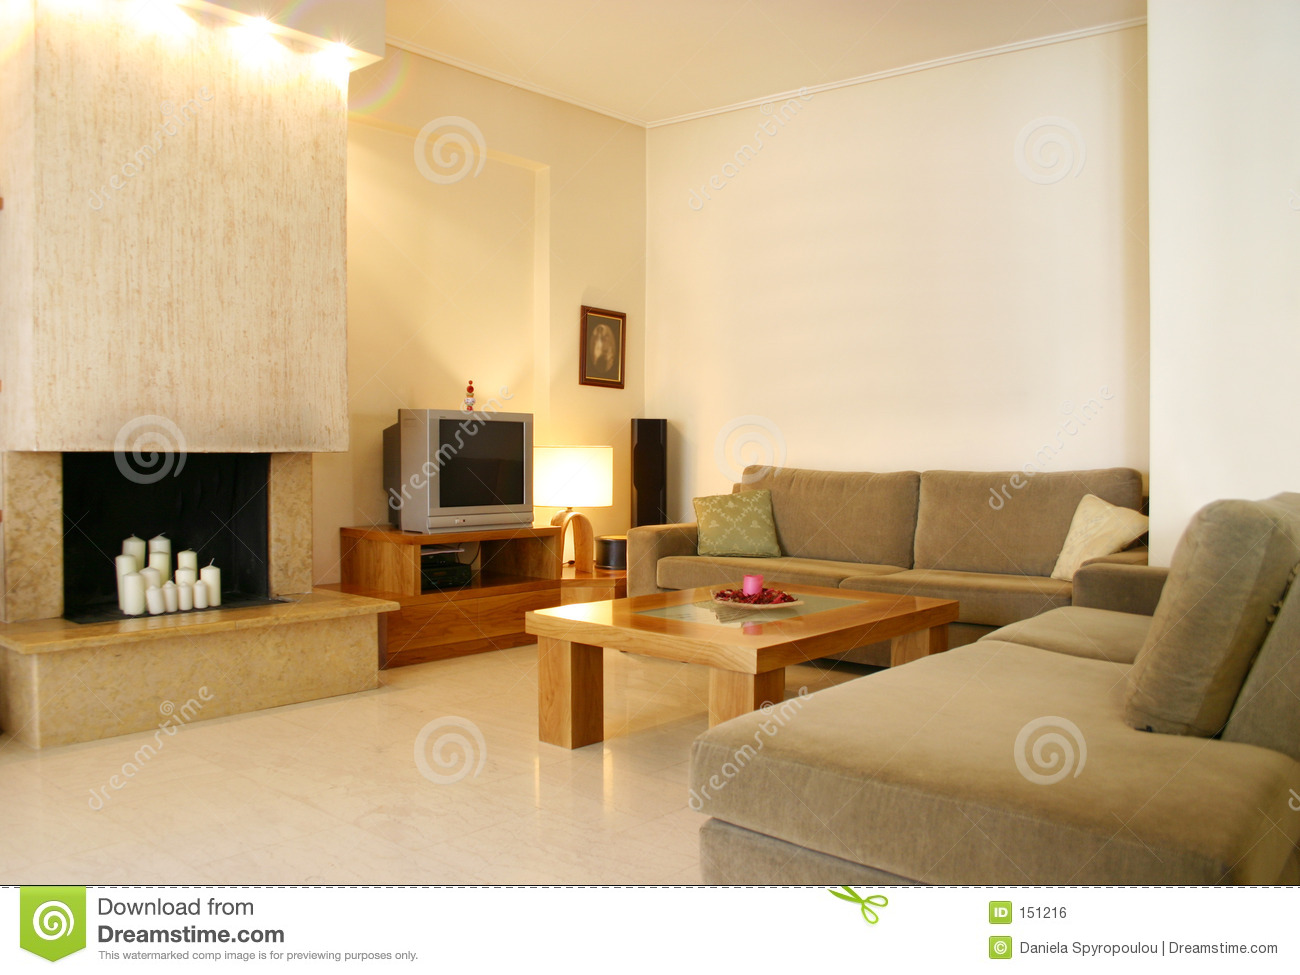 Download Home Interior Design Stock Photo. Image Of Modern, Decorating    151216